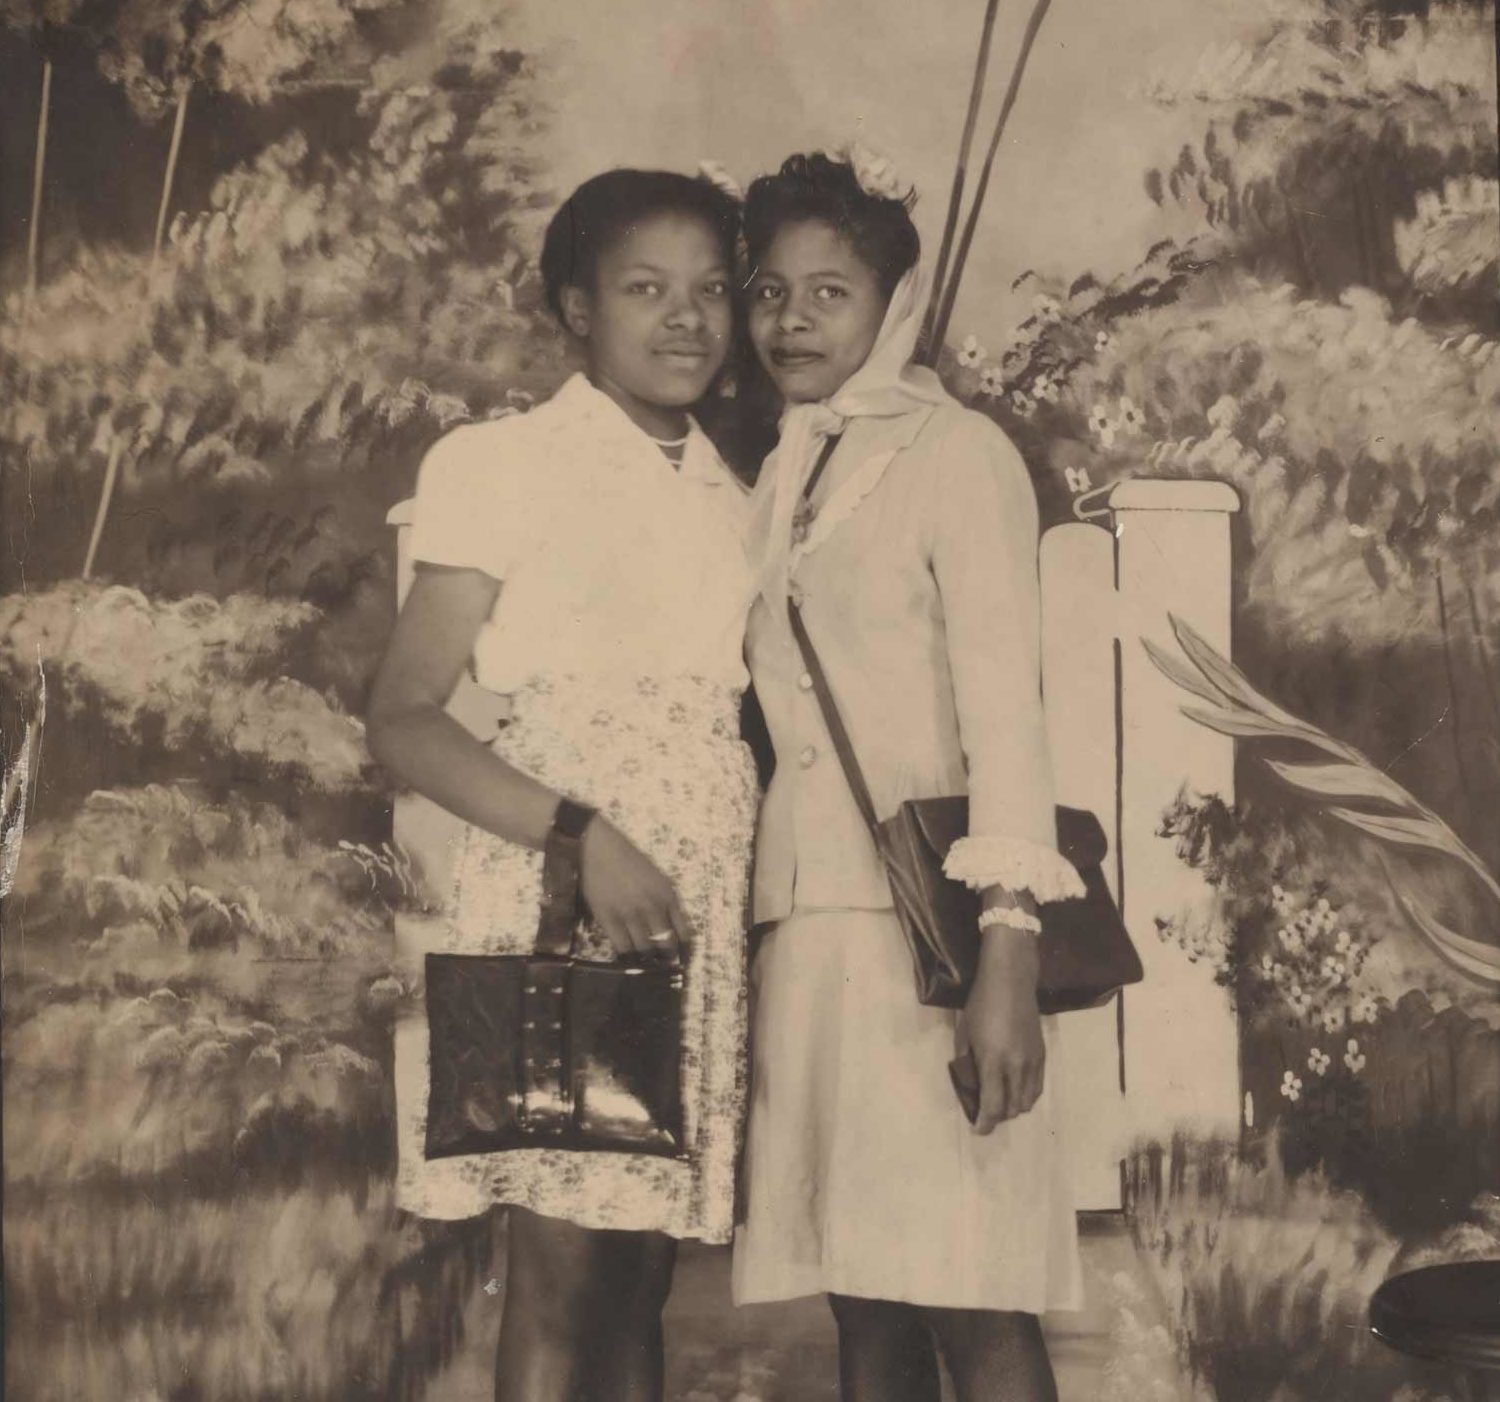 'The Soul as a Picture Gallery': Mid-Century African-American Portraits | by Gaiutra Bahadur | NYR Daily | The New York Review of Books